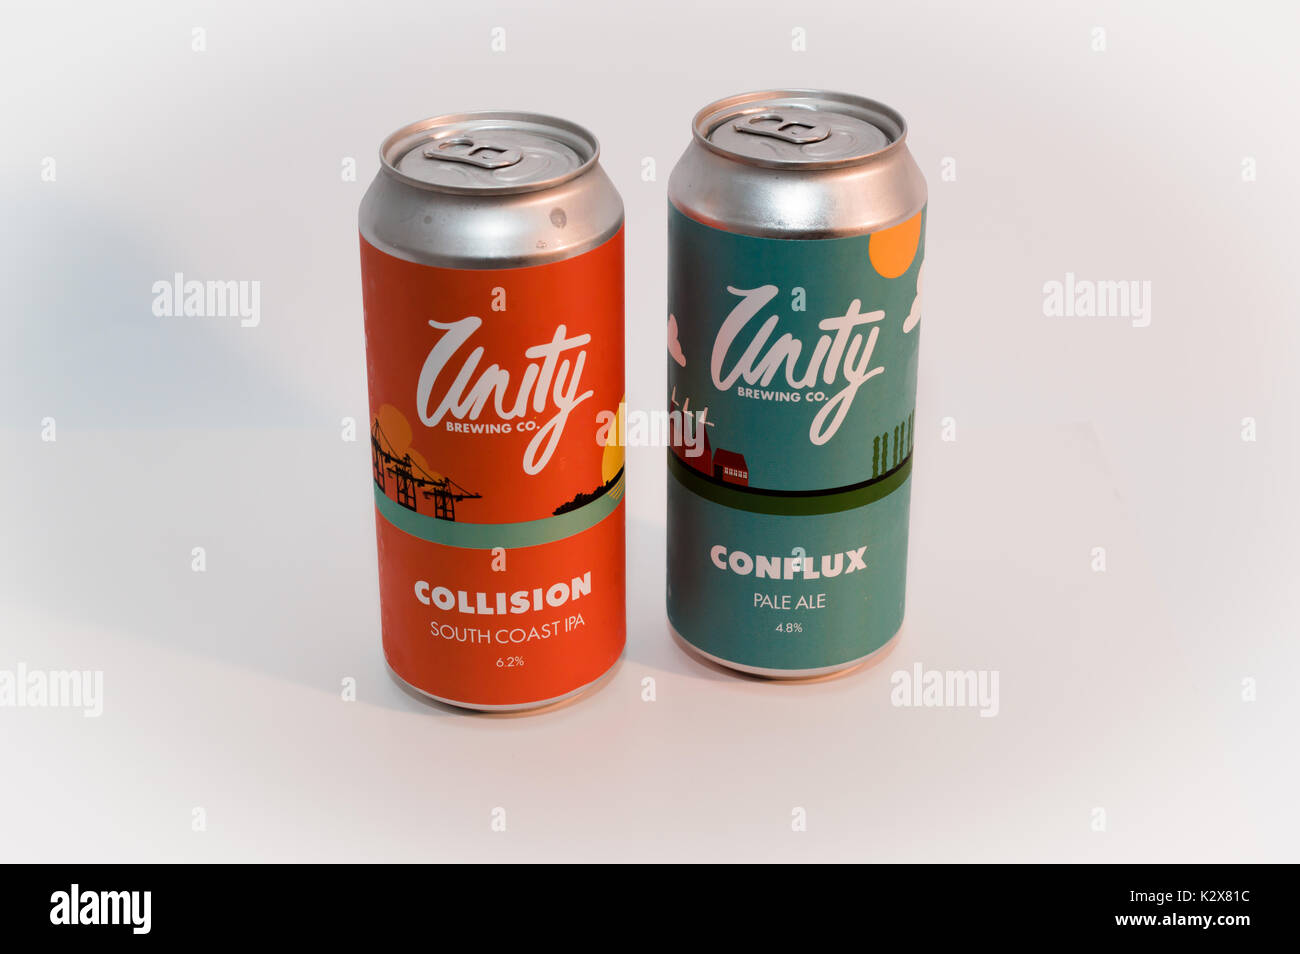 Two cans of Unity craft ale on white background - Stock Image